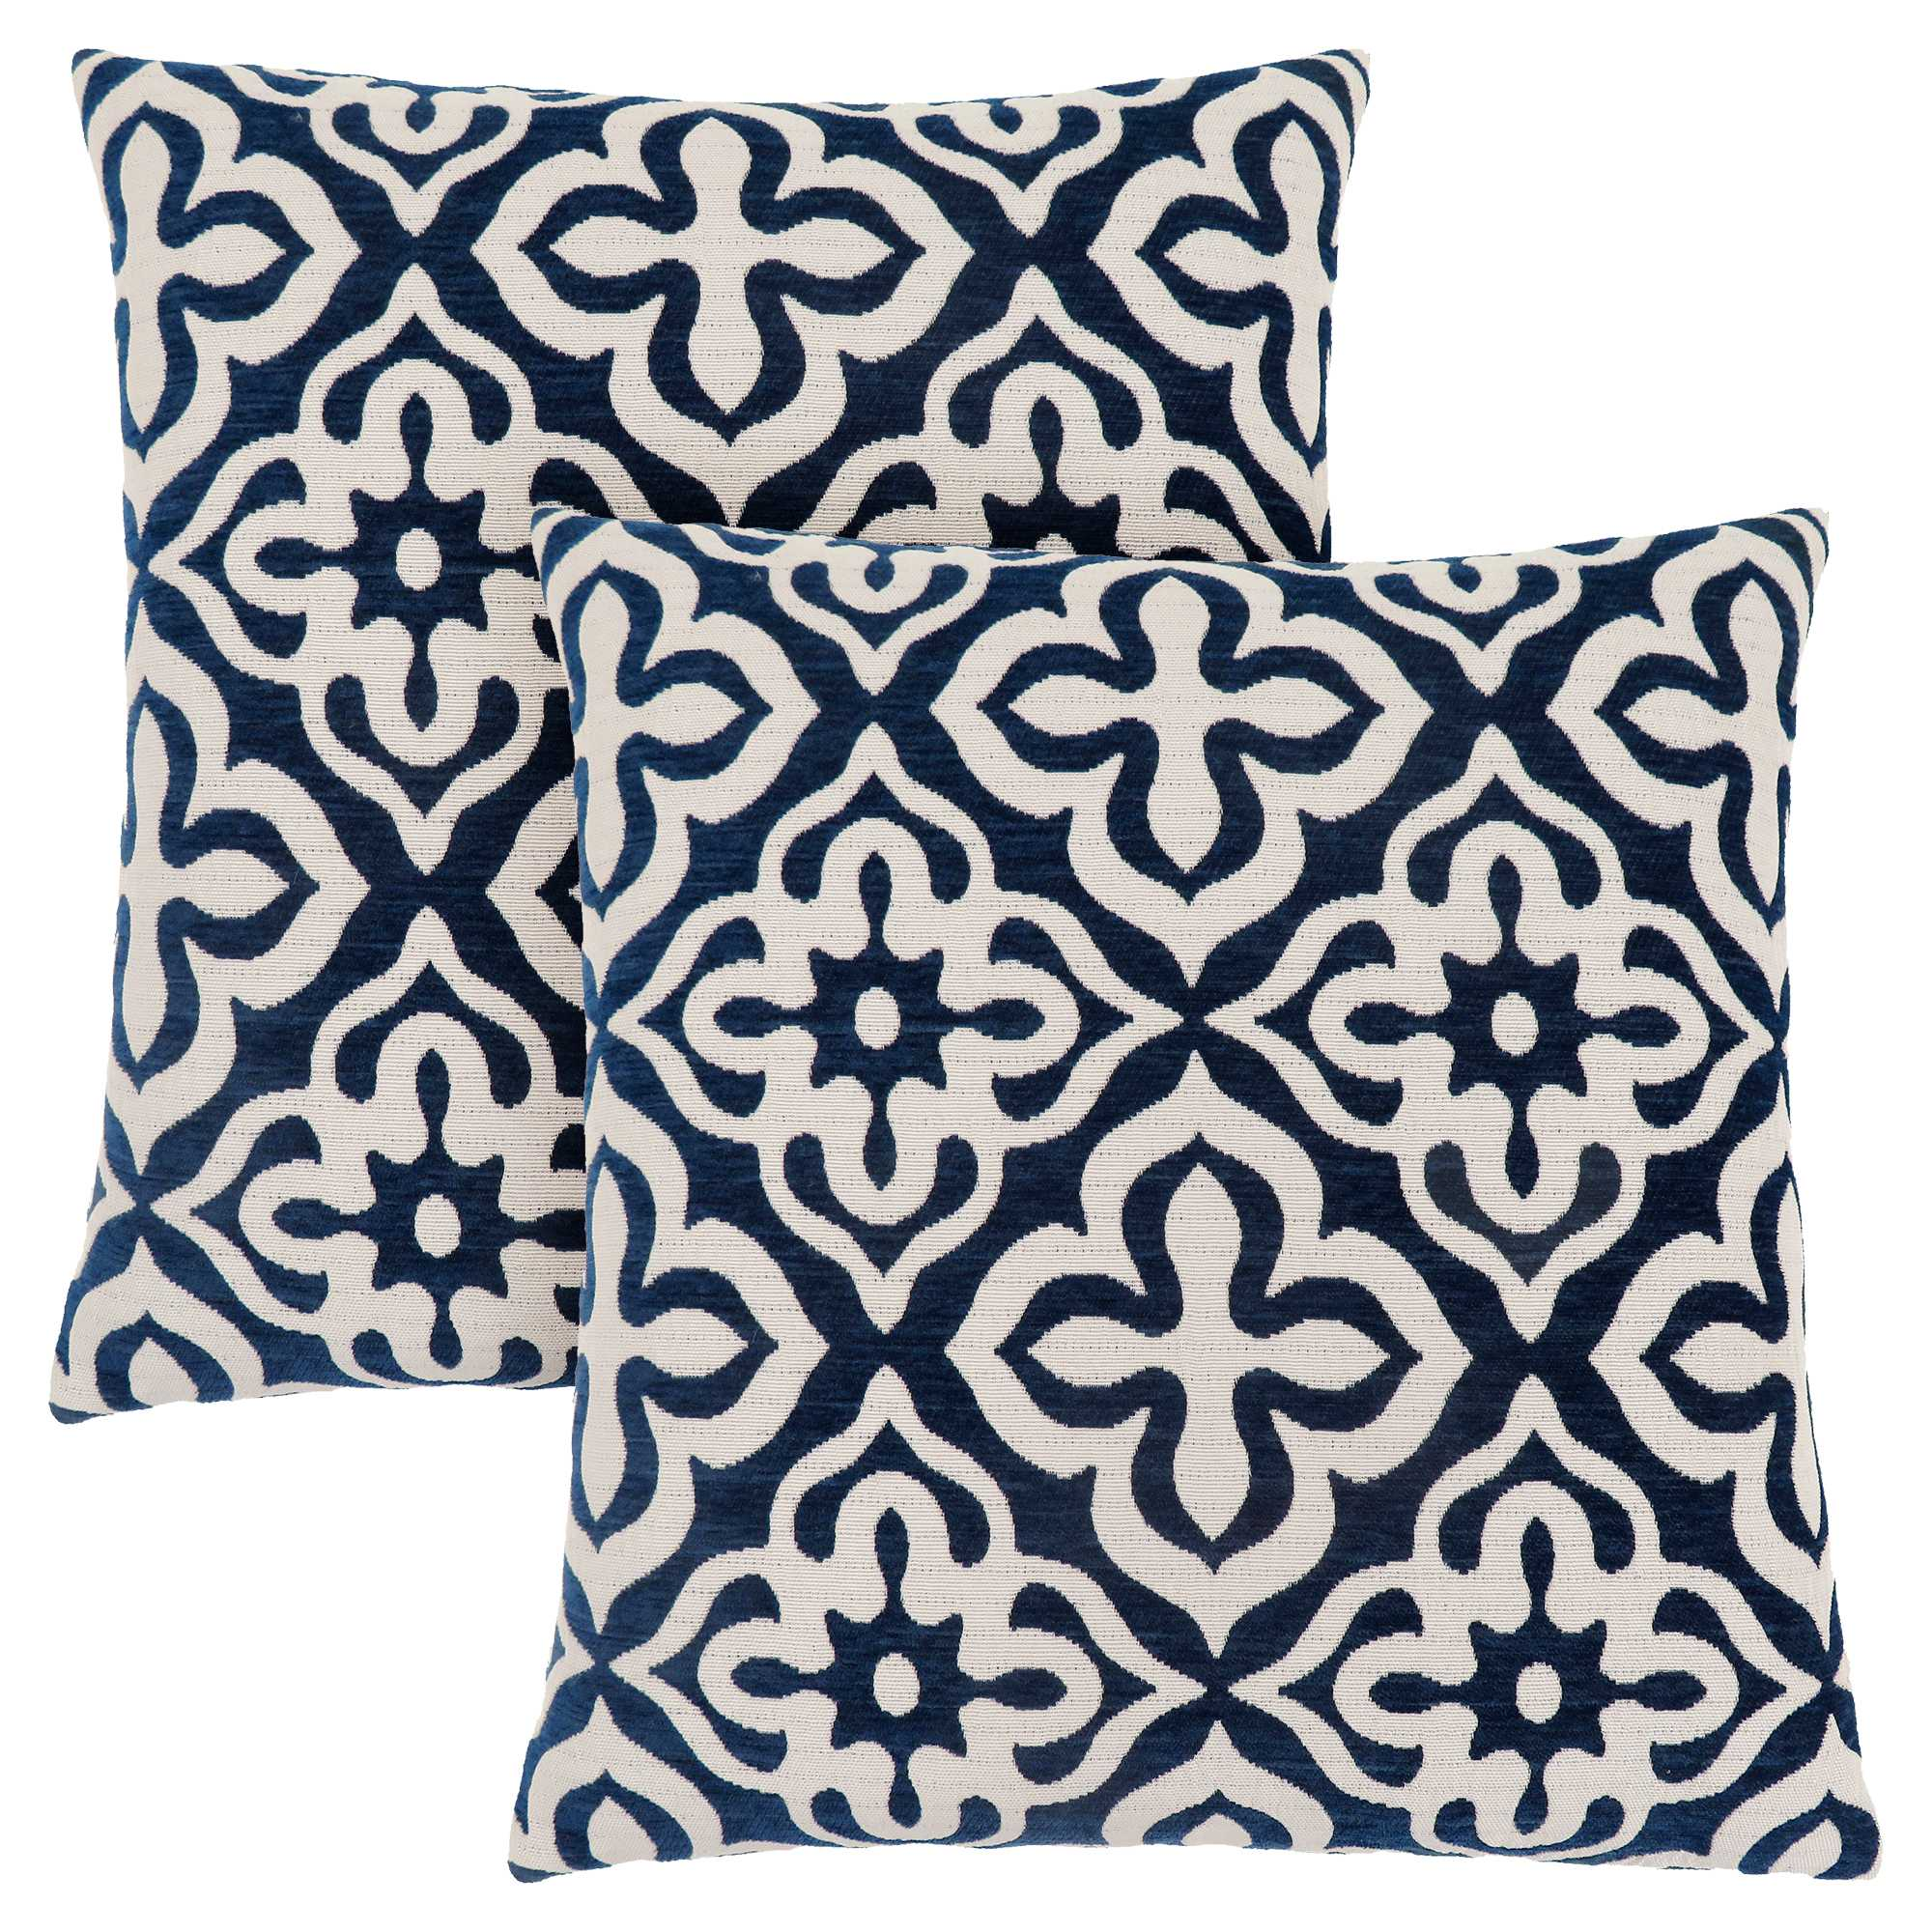 "18"" x 18"" Dark Blue, Motif Design - Pillow 2pcs"